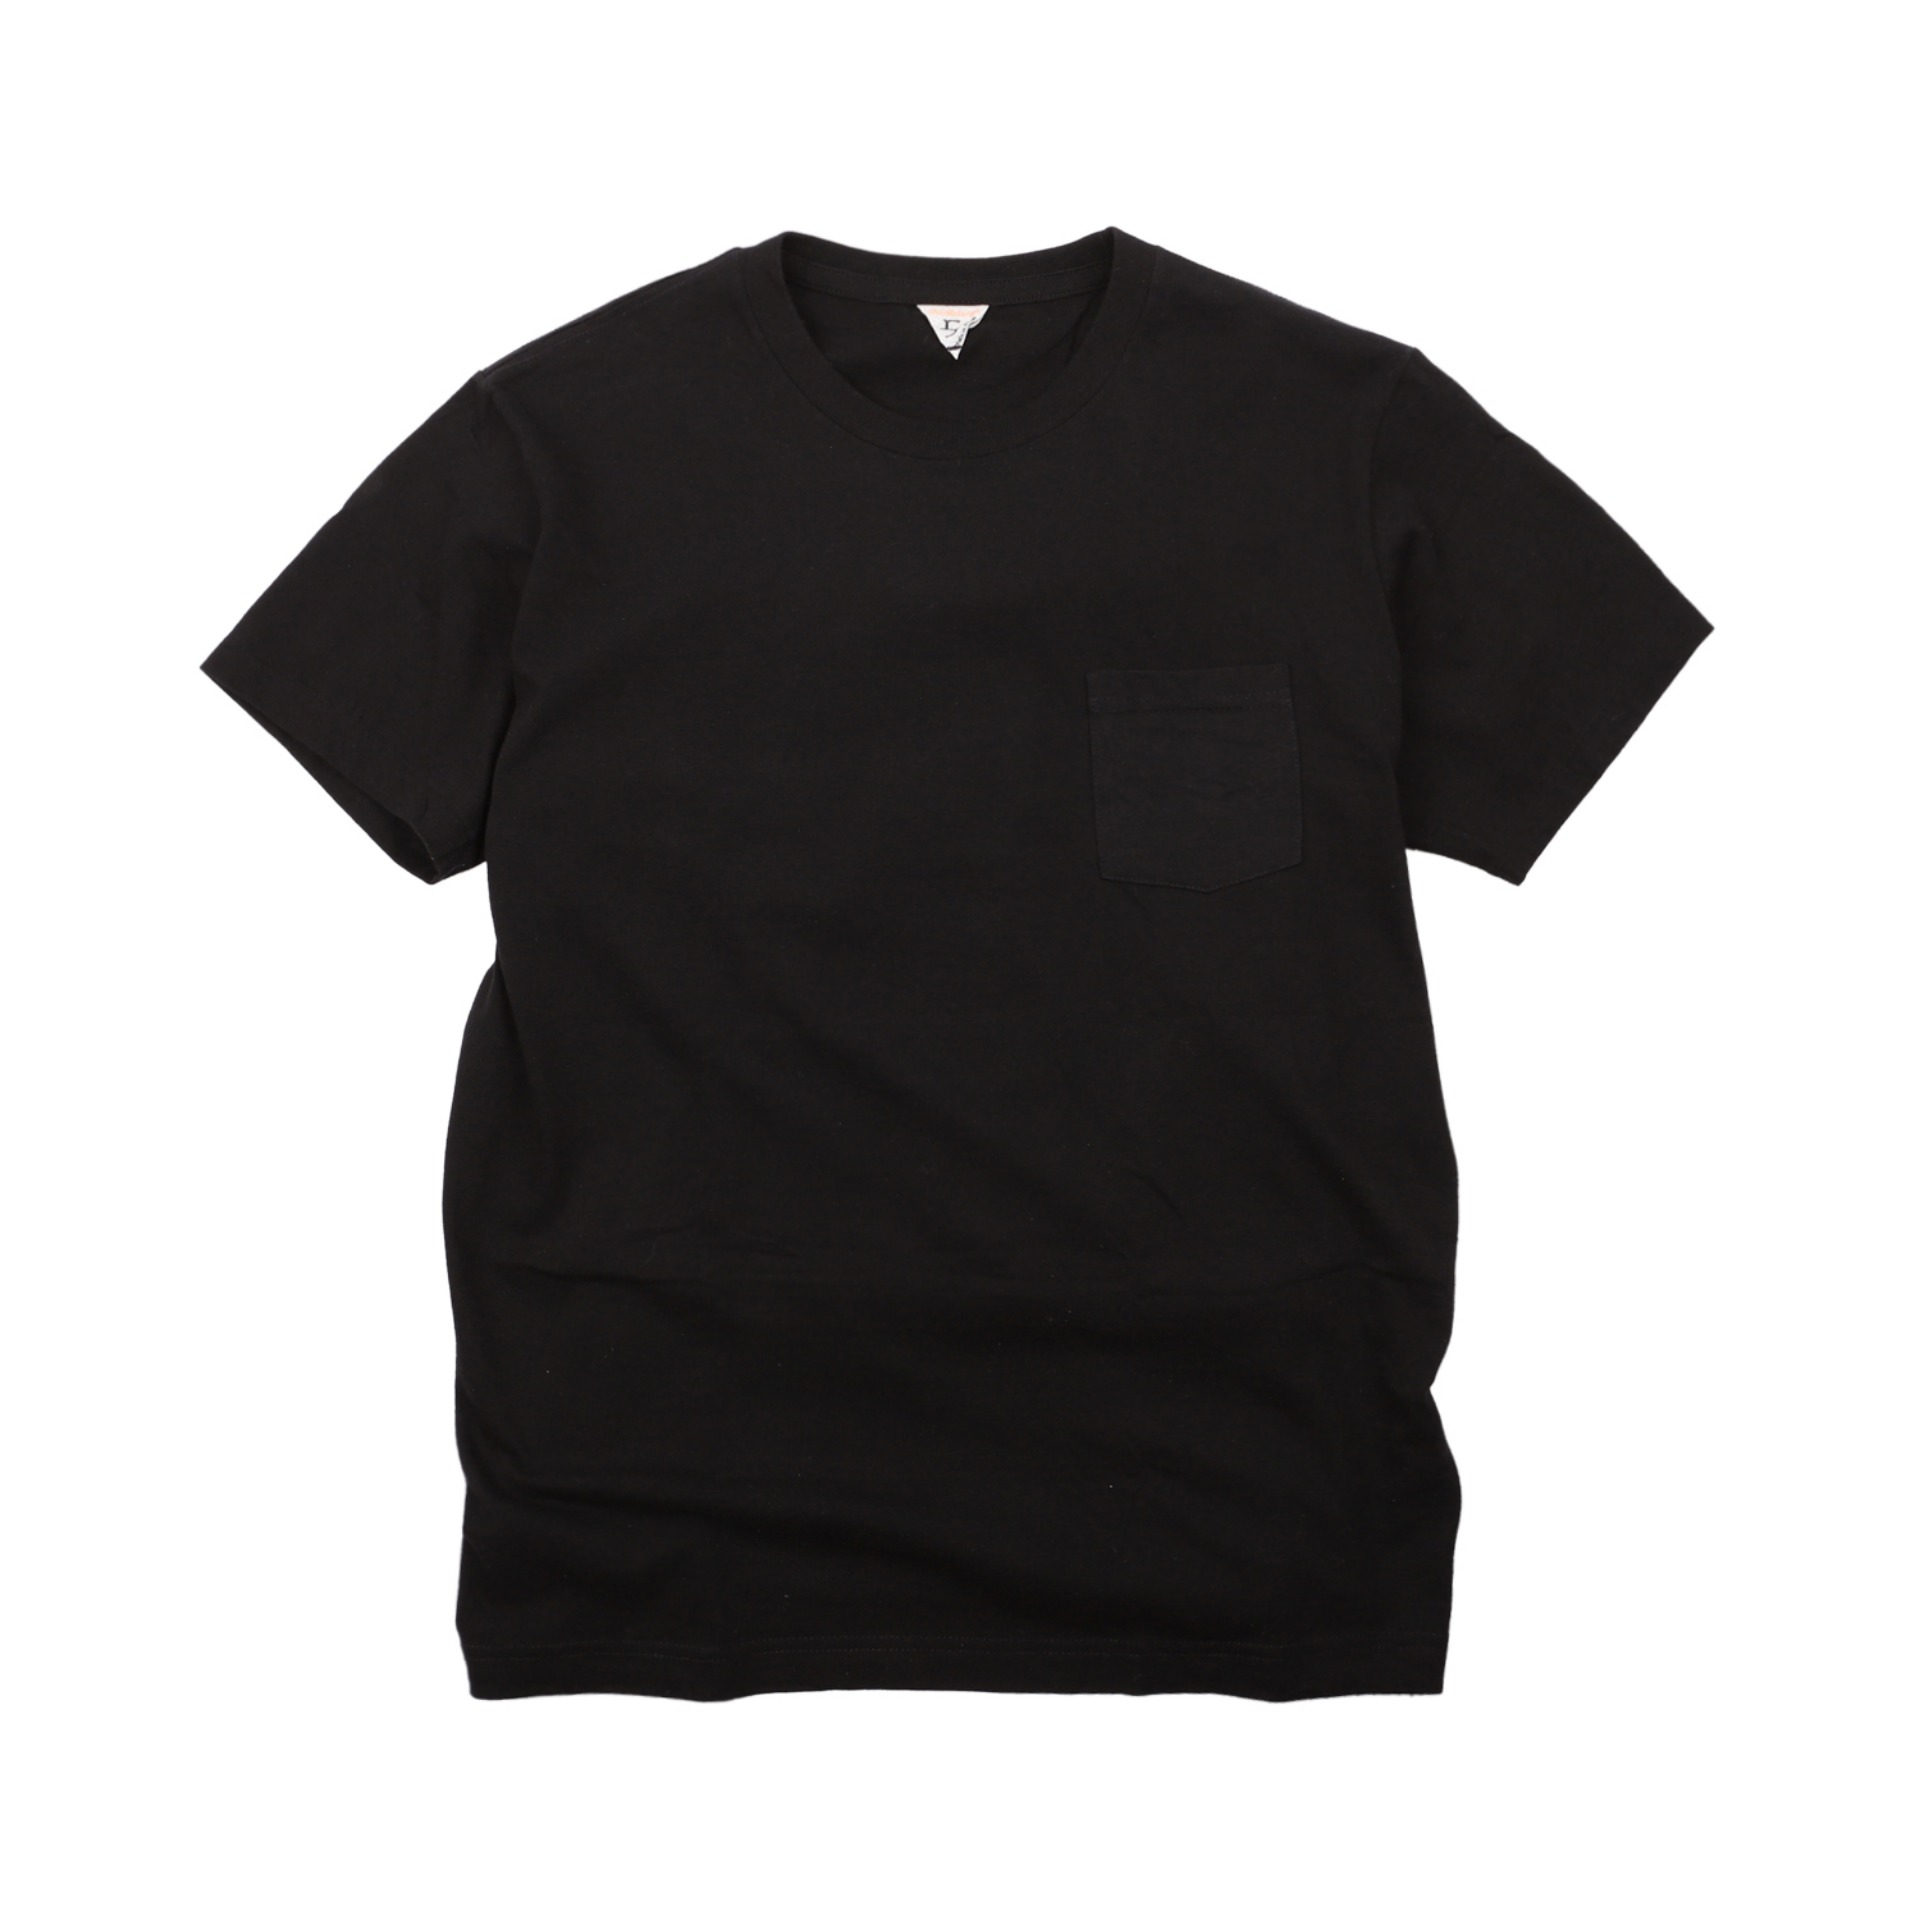 [SUNNY]Pocket T-shirtShort Sleeve T-Shirt(Black)